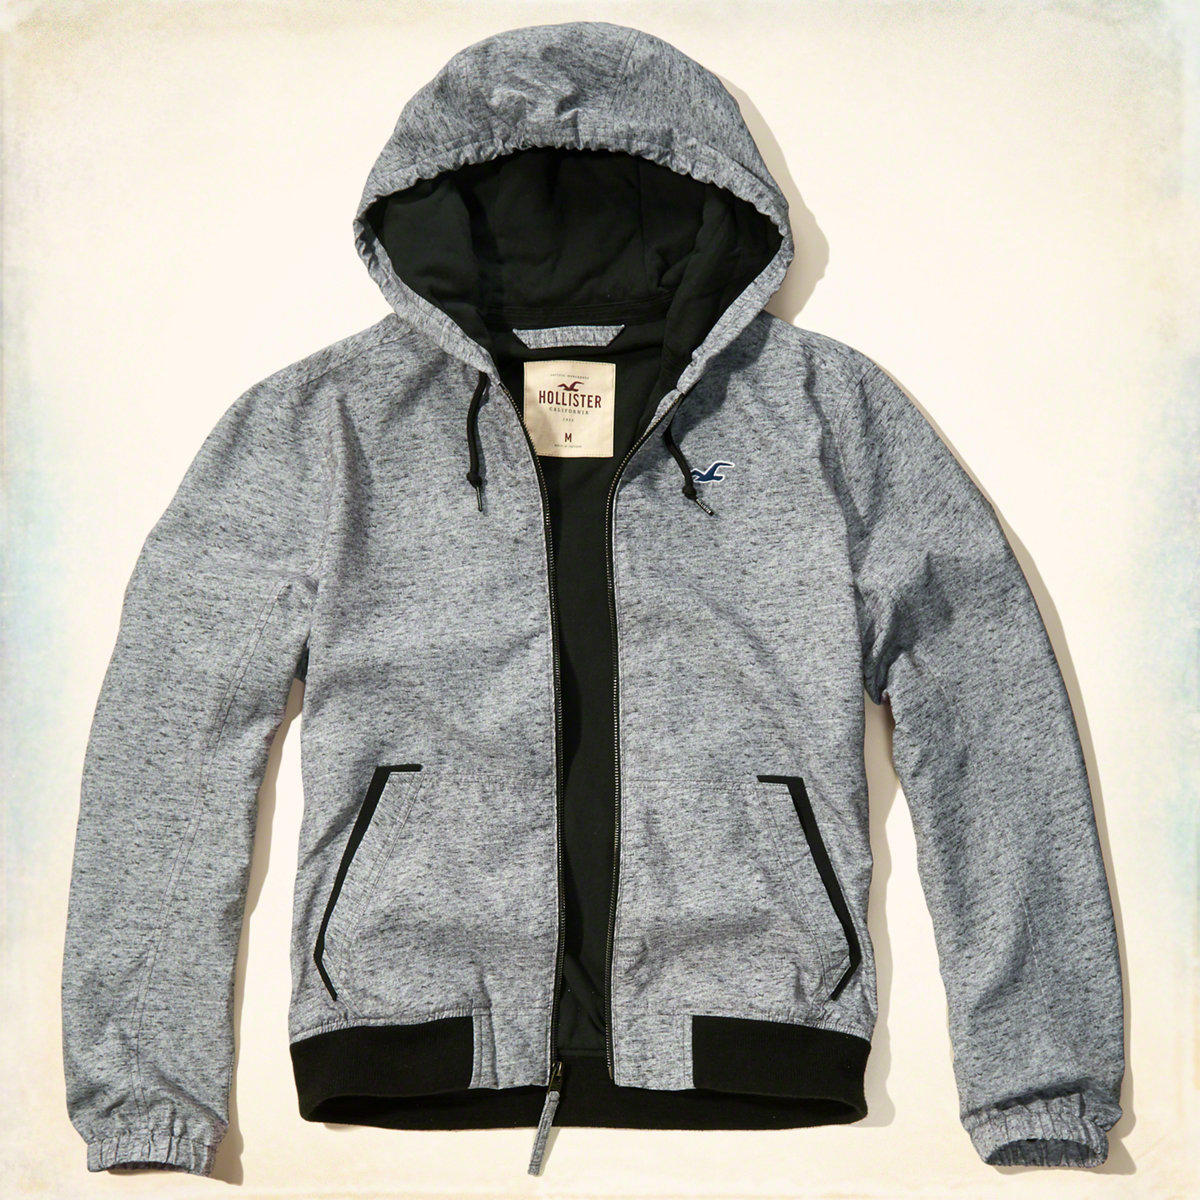 Jersey Lined Windbreaker from Hollister Co. | Fall Jackets ...